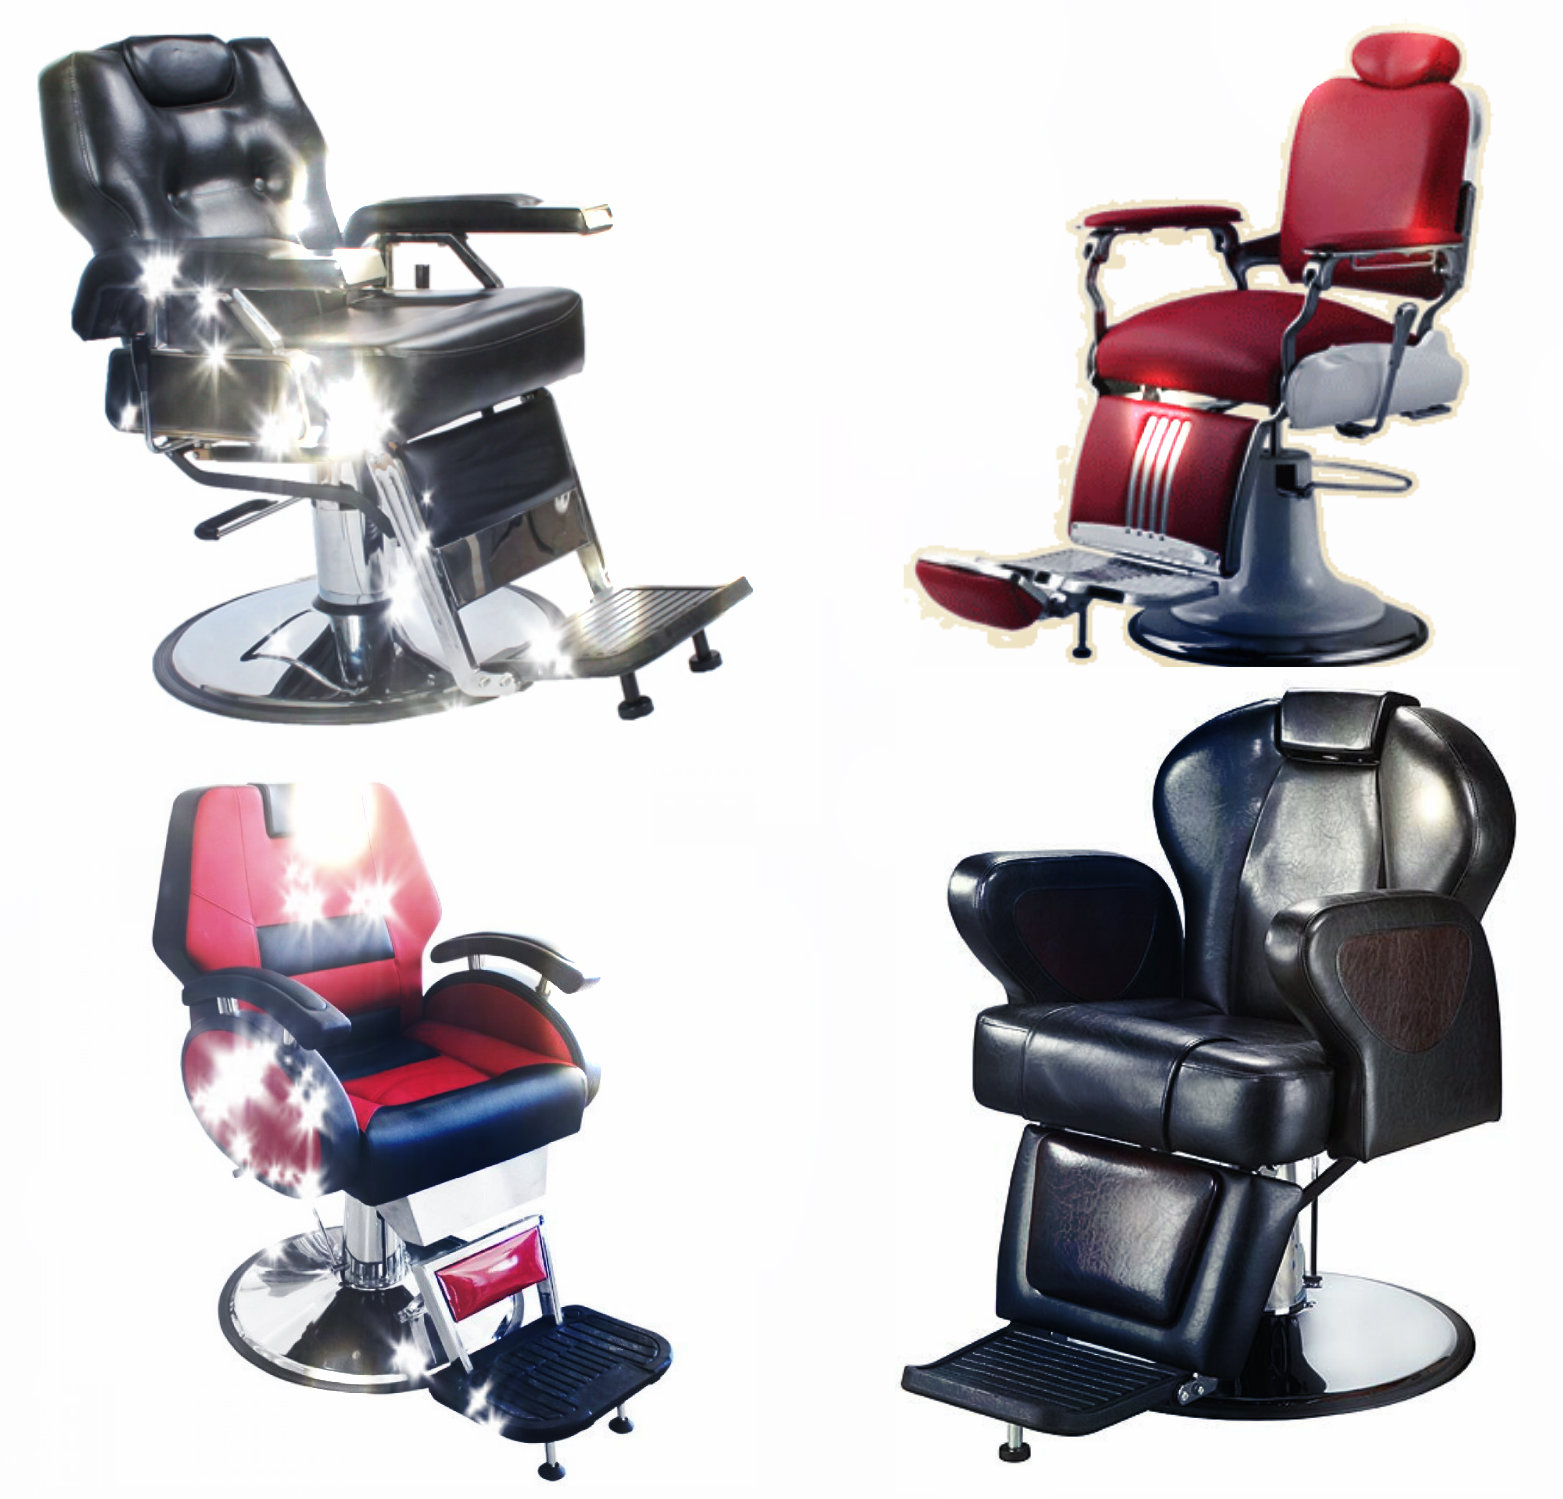 styling chairs for sale swing chair gumtree perth barber toronto salon equipment furniture depot | free images at clker.com - vector ...